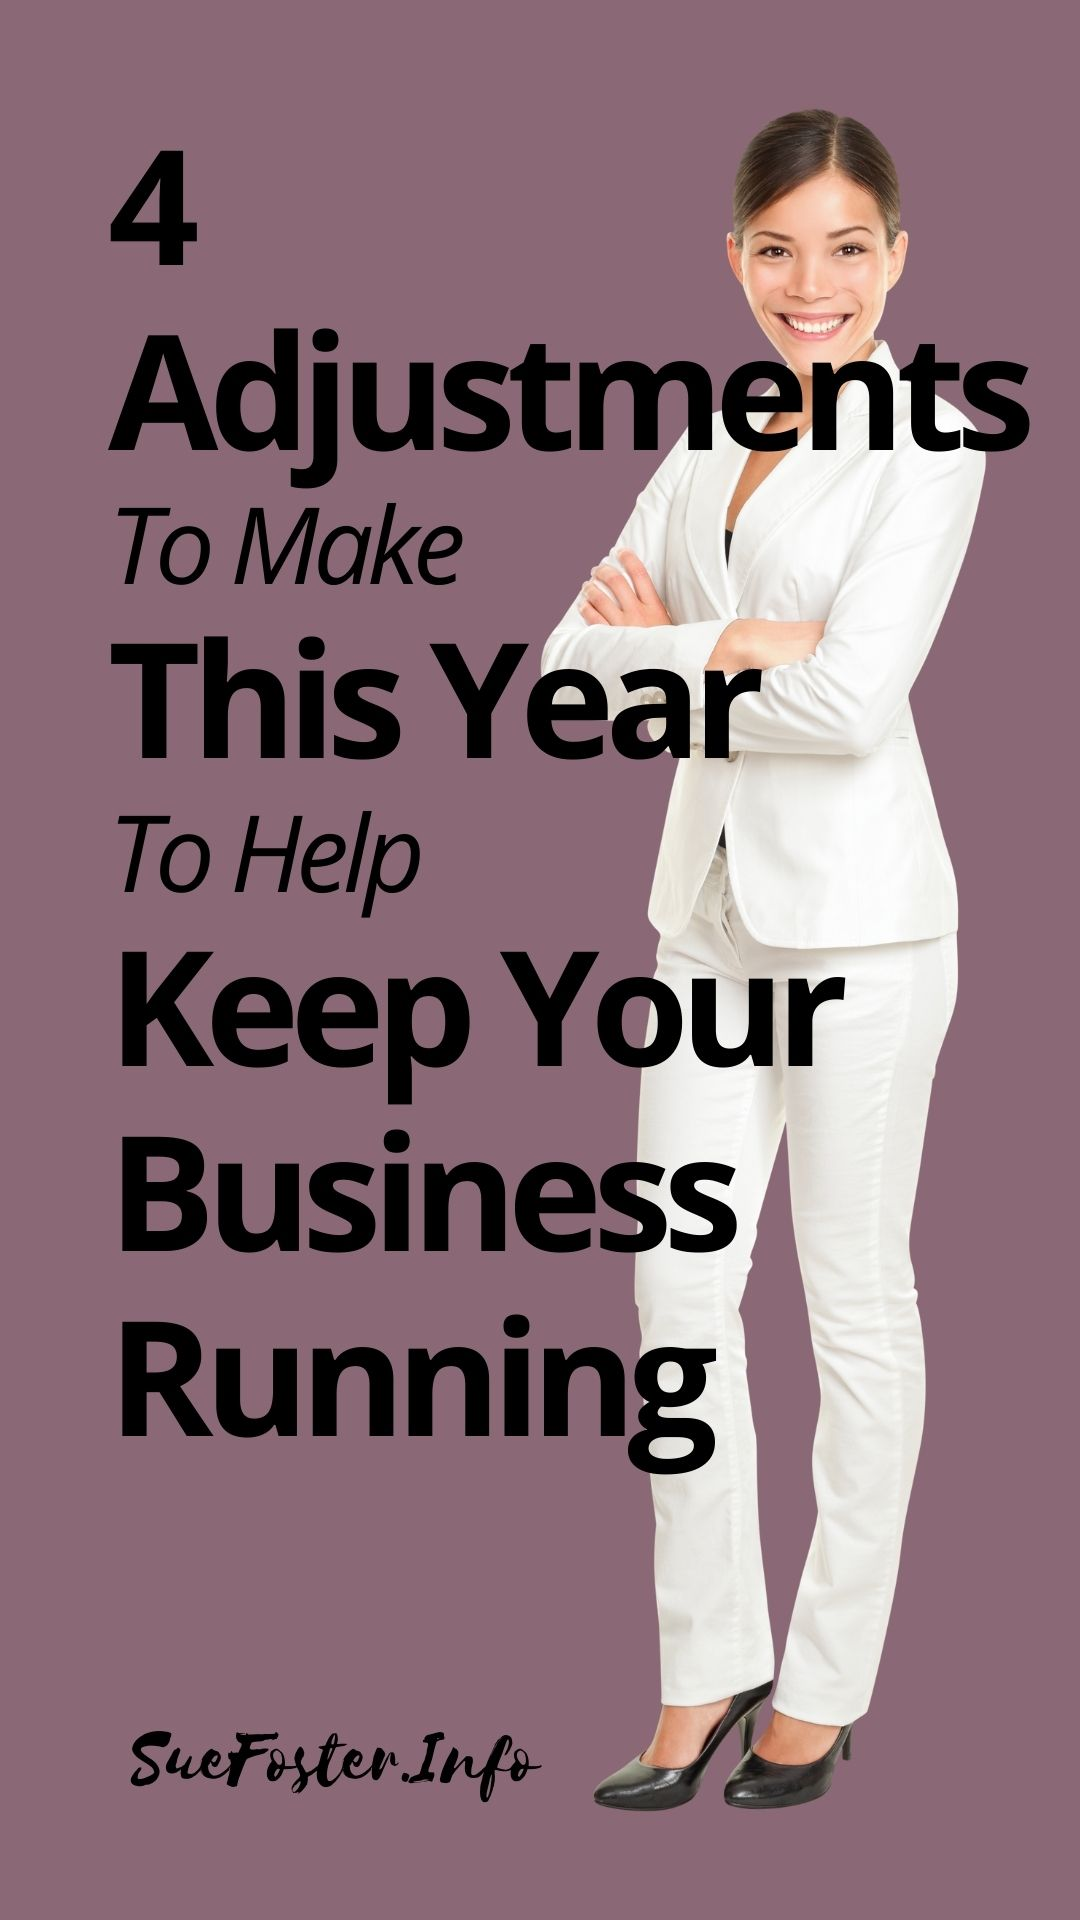 Here are some changes you might want to make to your business to ensure it doesn't go under like so many others.